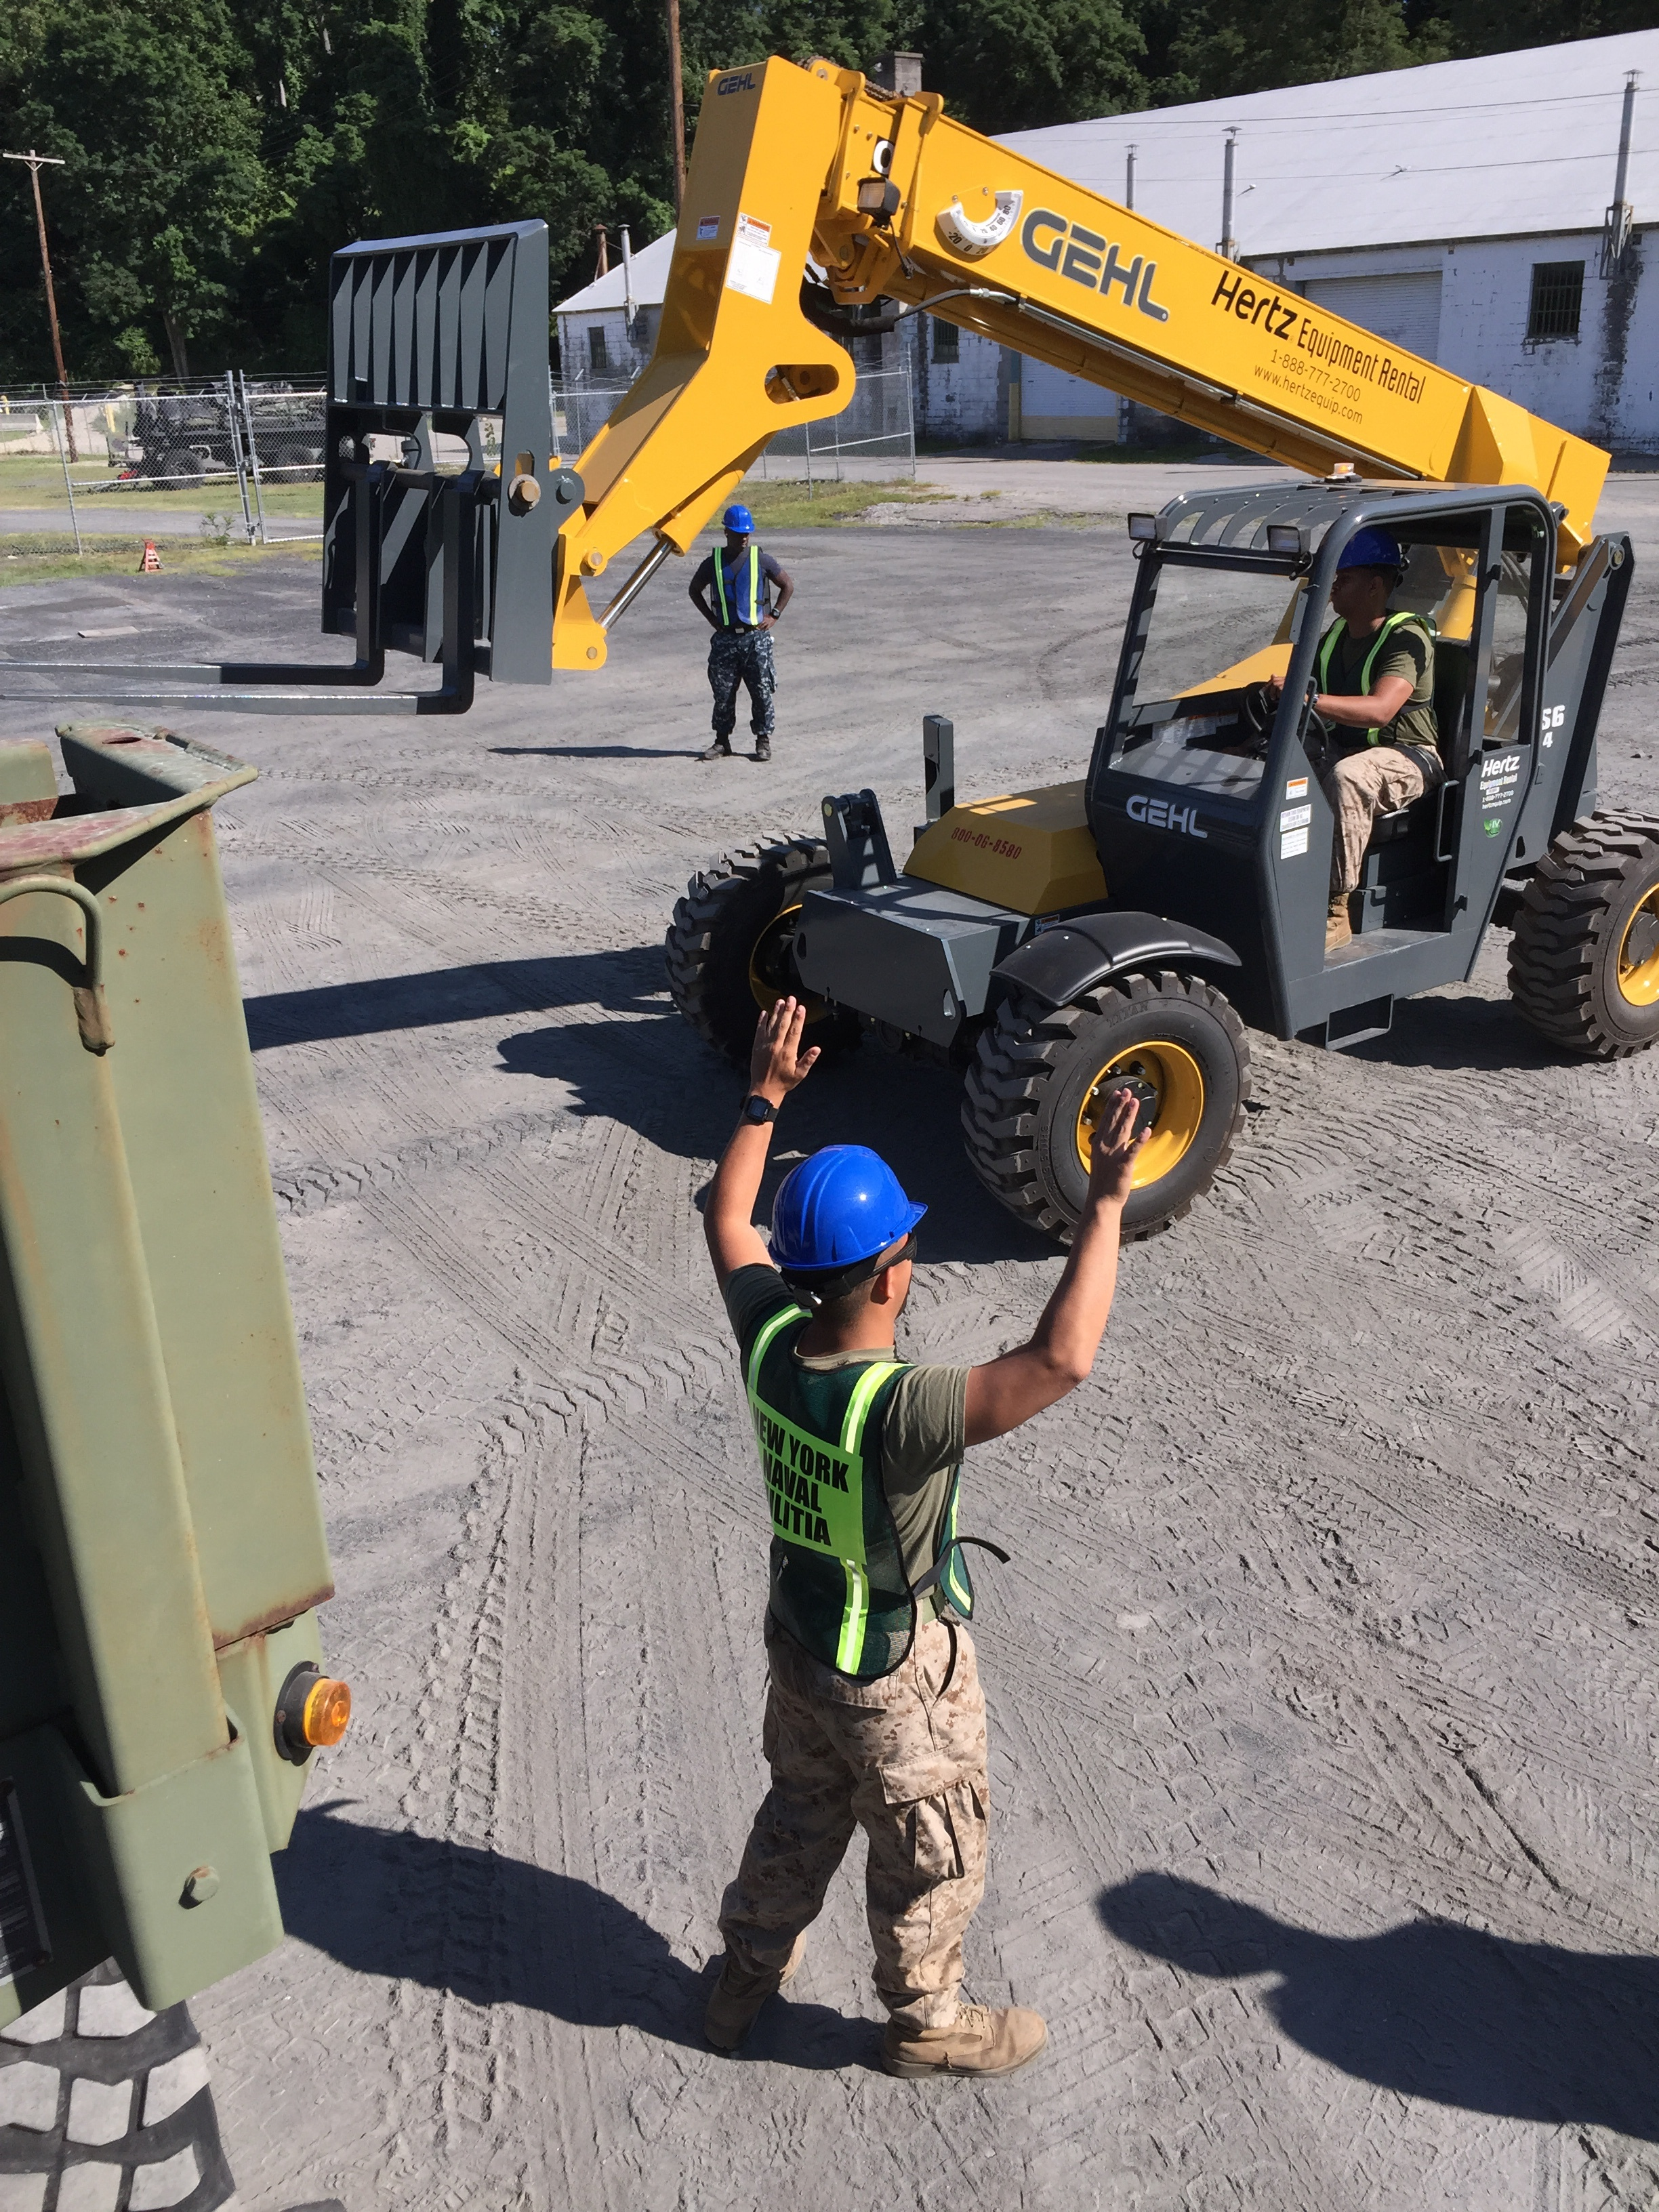 Equipment Rental Business Experiencing Huge Growth